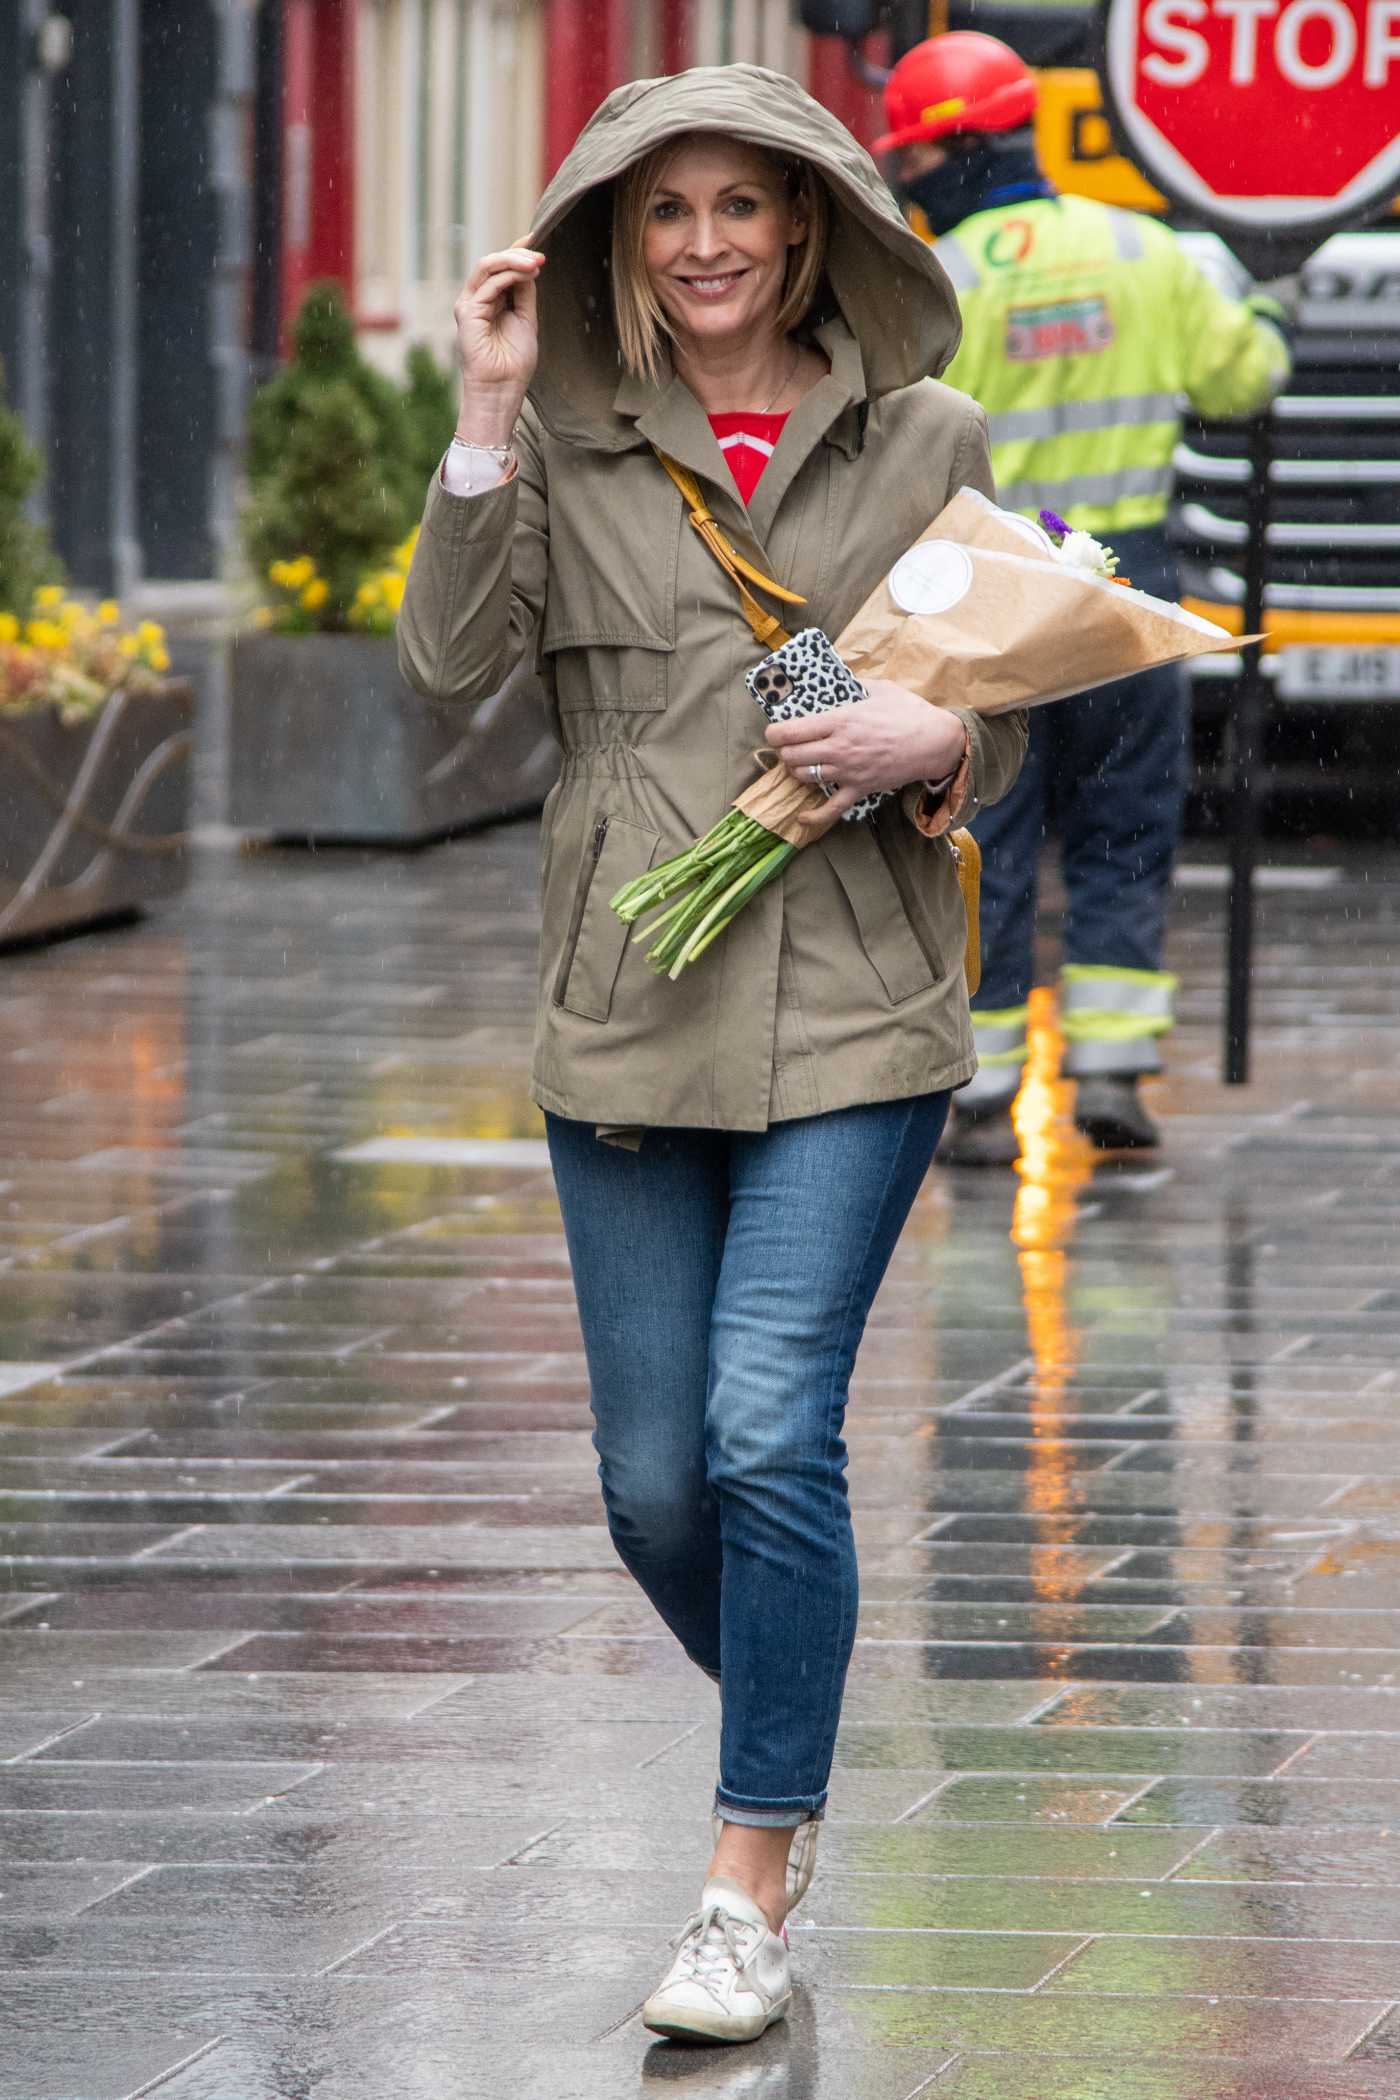 Jenni Falconer in an Olive Jacket Leaves the Global Studios in London 03/10/2021